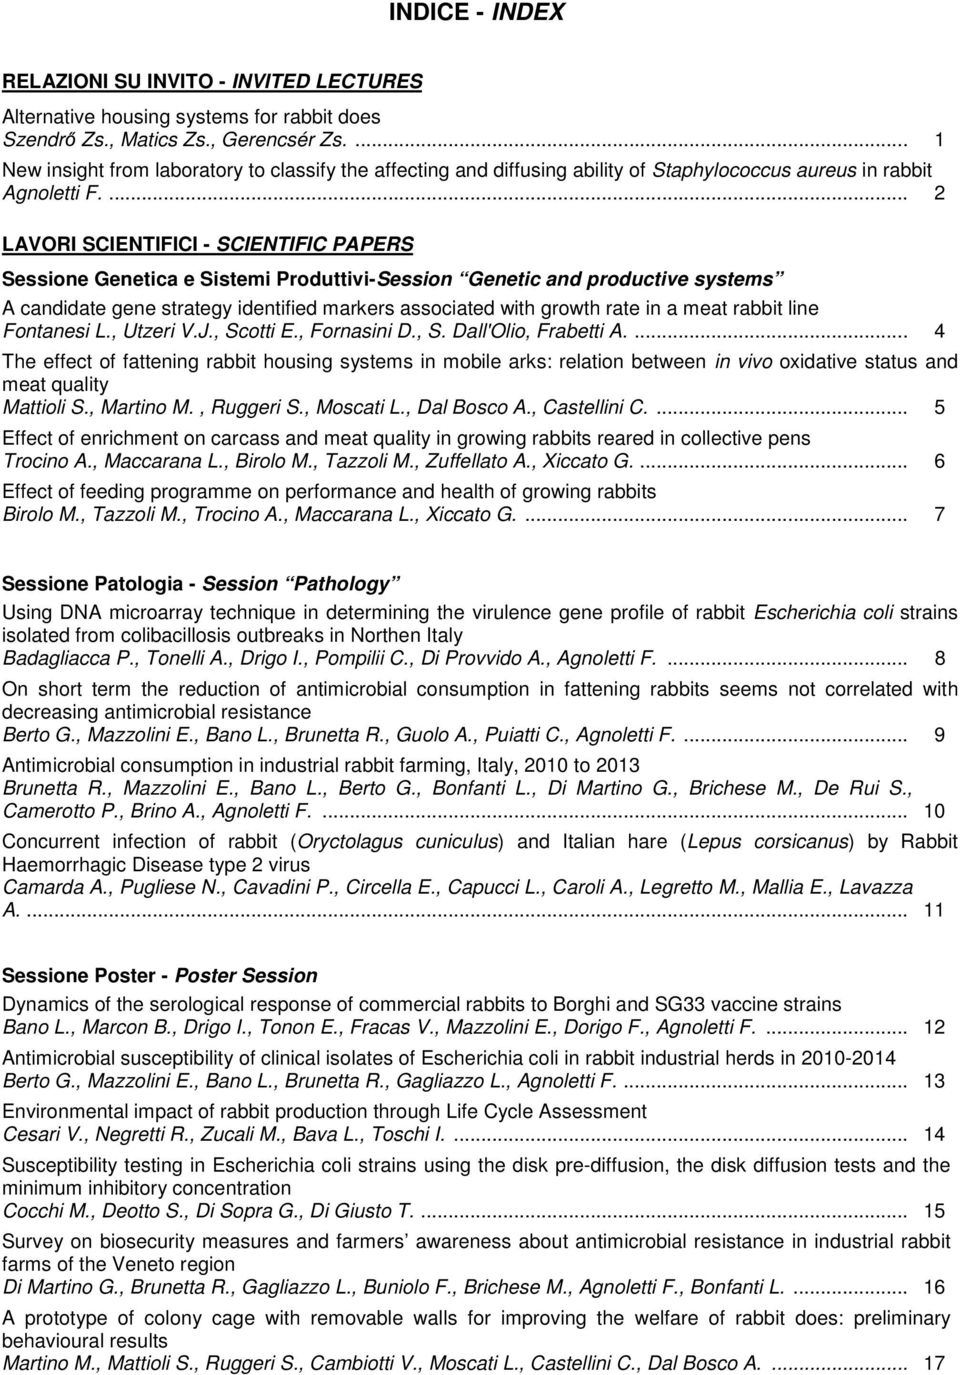 ... 2 LAVORI SCIENTIFICI - SCIENTIFIC PAPERS Sessione Genetica e Sistemi Produttivi-Session Genetic and productive systems A candidate gene strategy identified markers associated with growth rate in